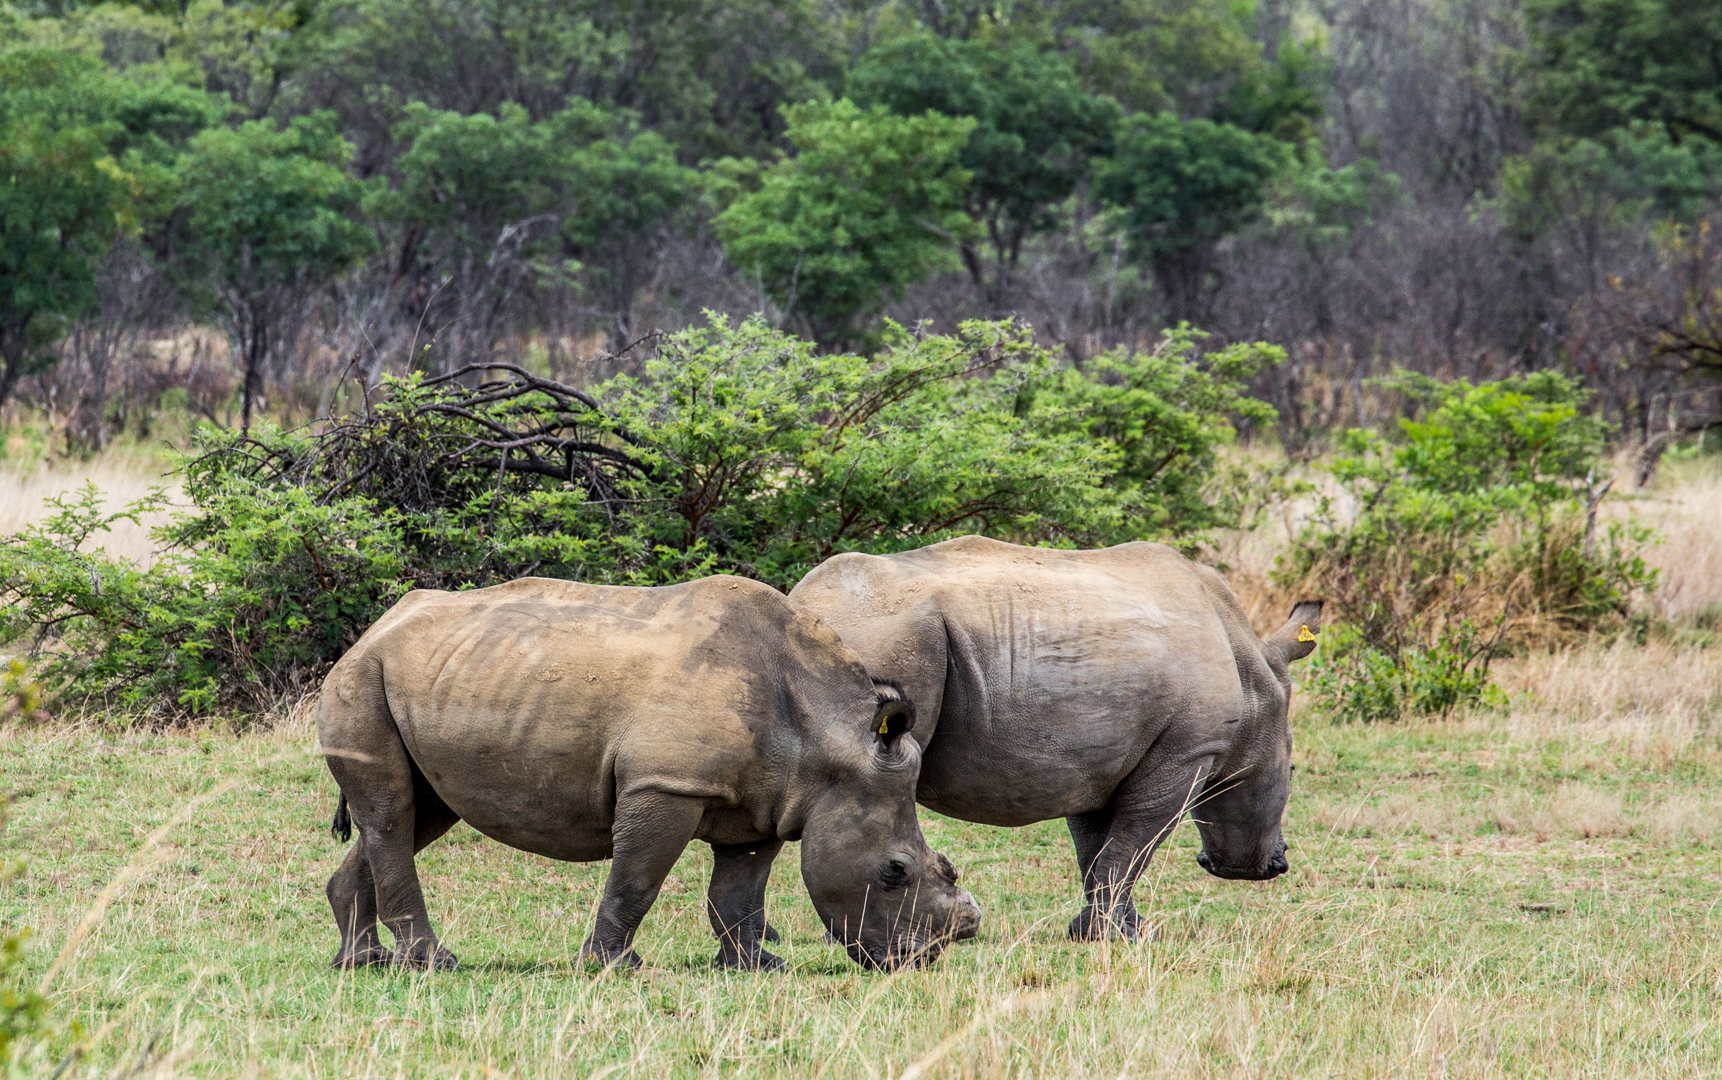 And, we found them! Two rhinos grazing in a field.